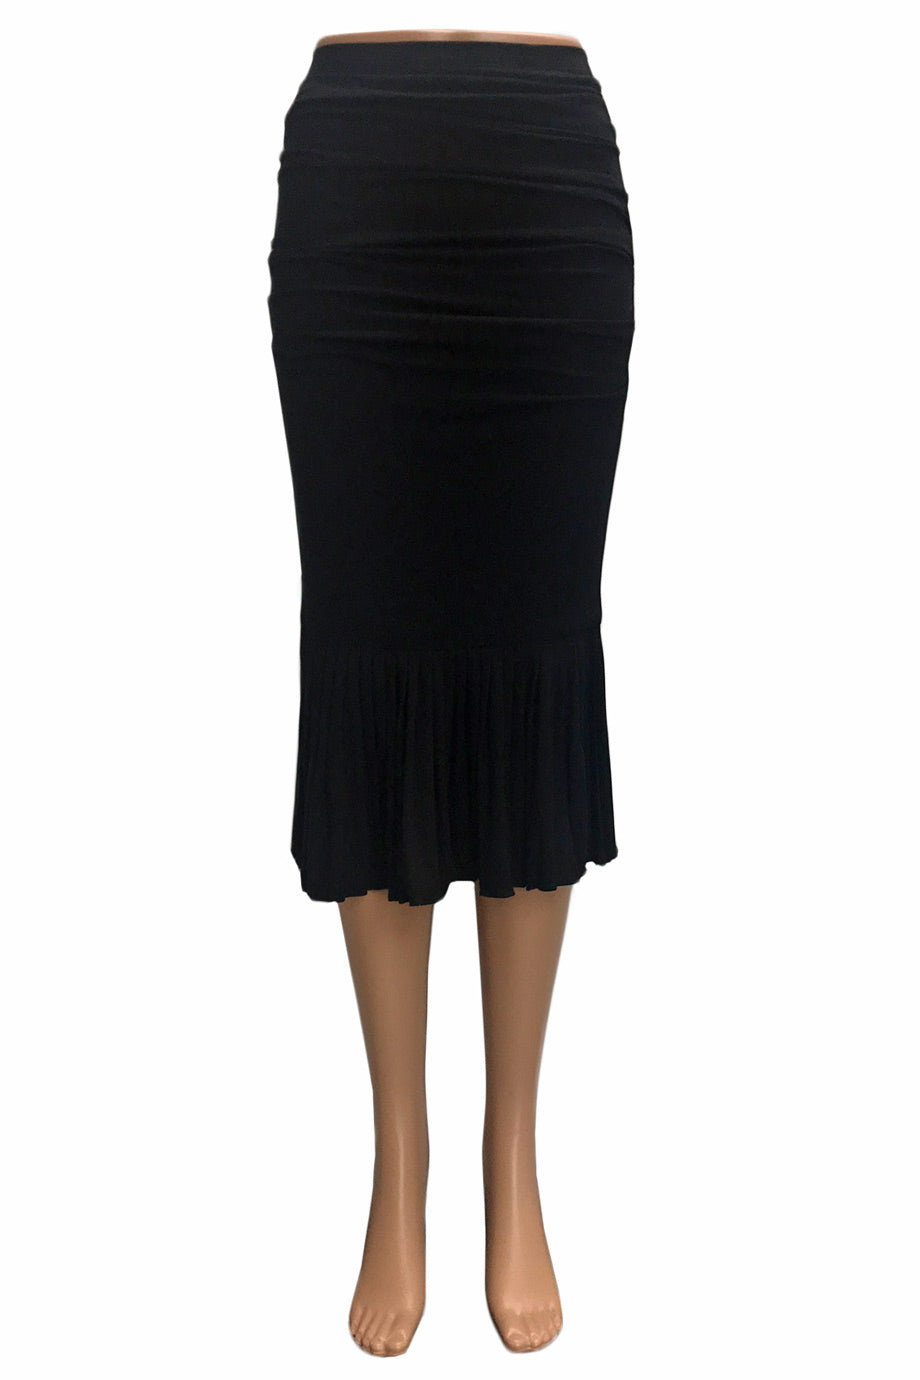 Dolce & Gabbana Black Wool Blend Ruched Midi Skirt / Sz 38-Style Therapy